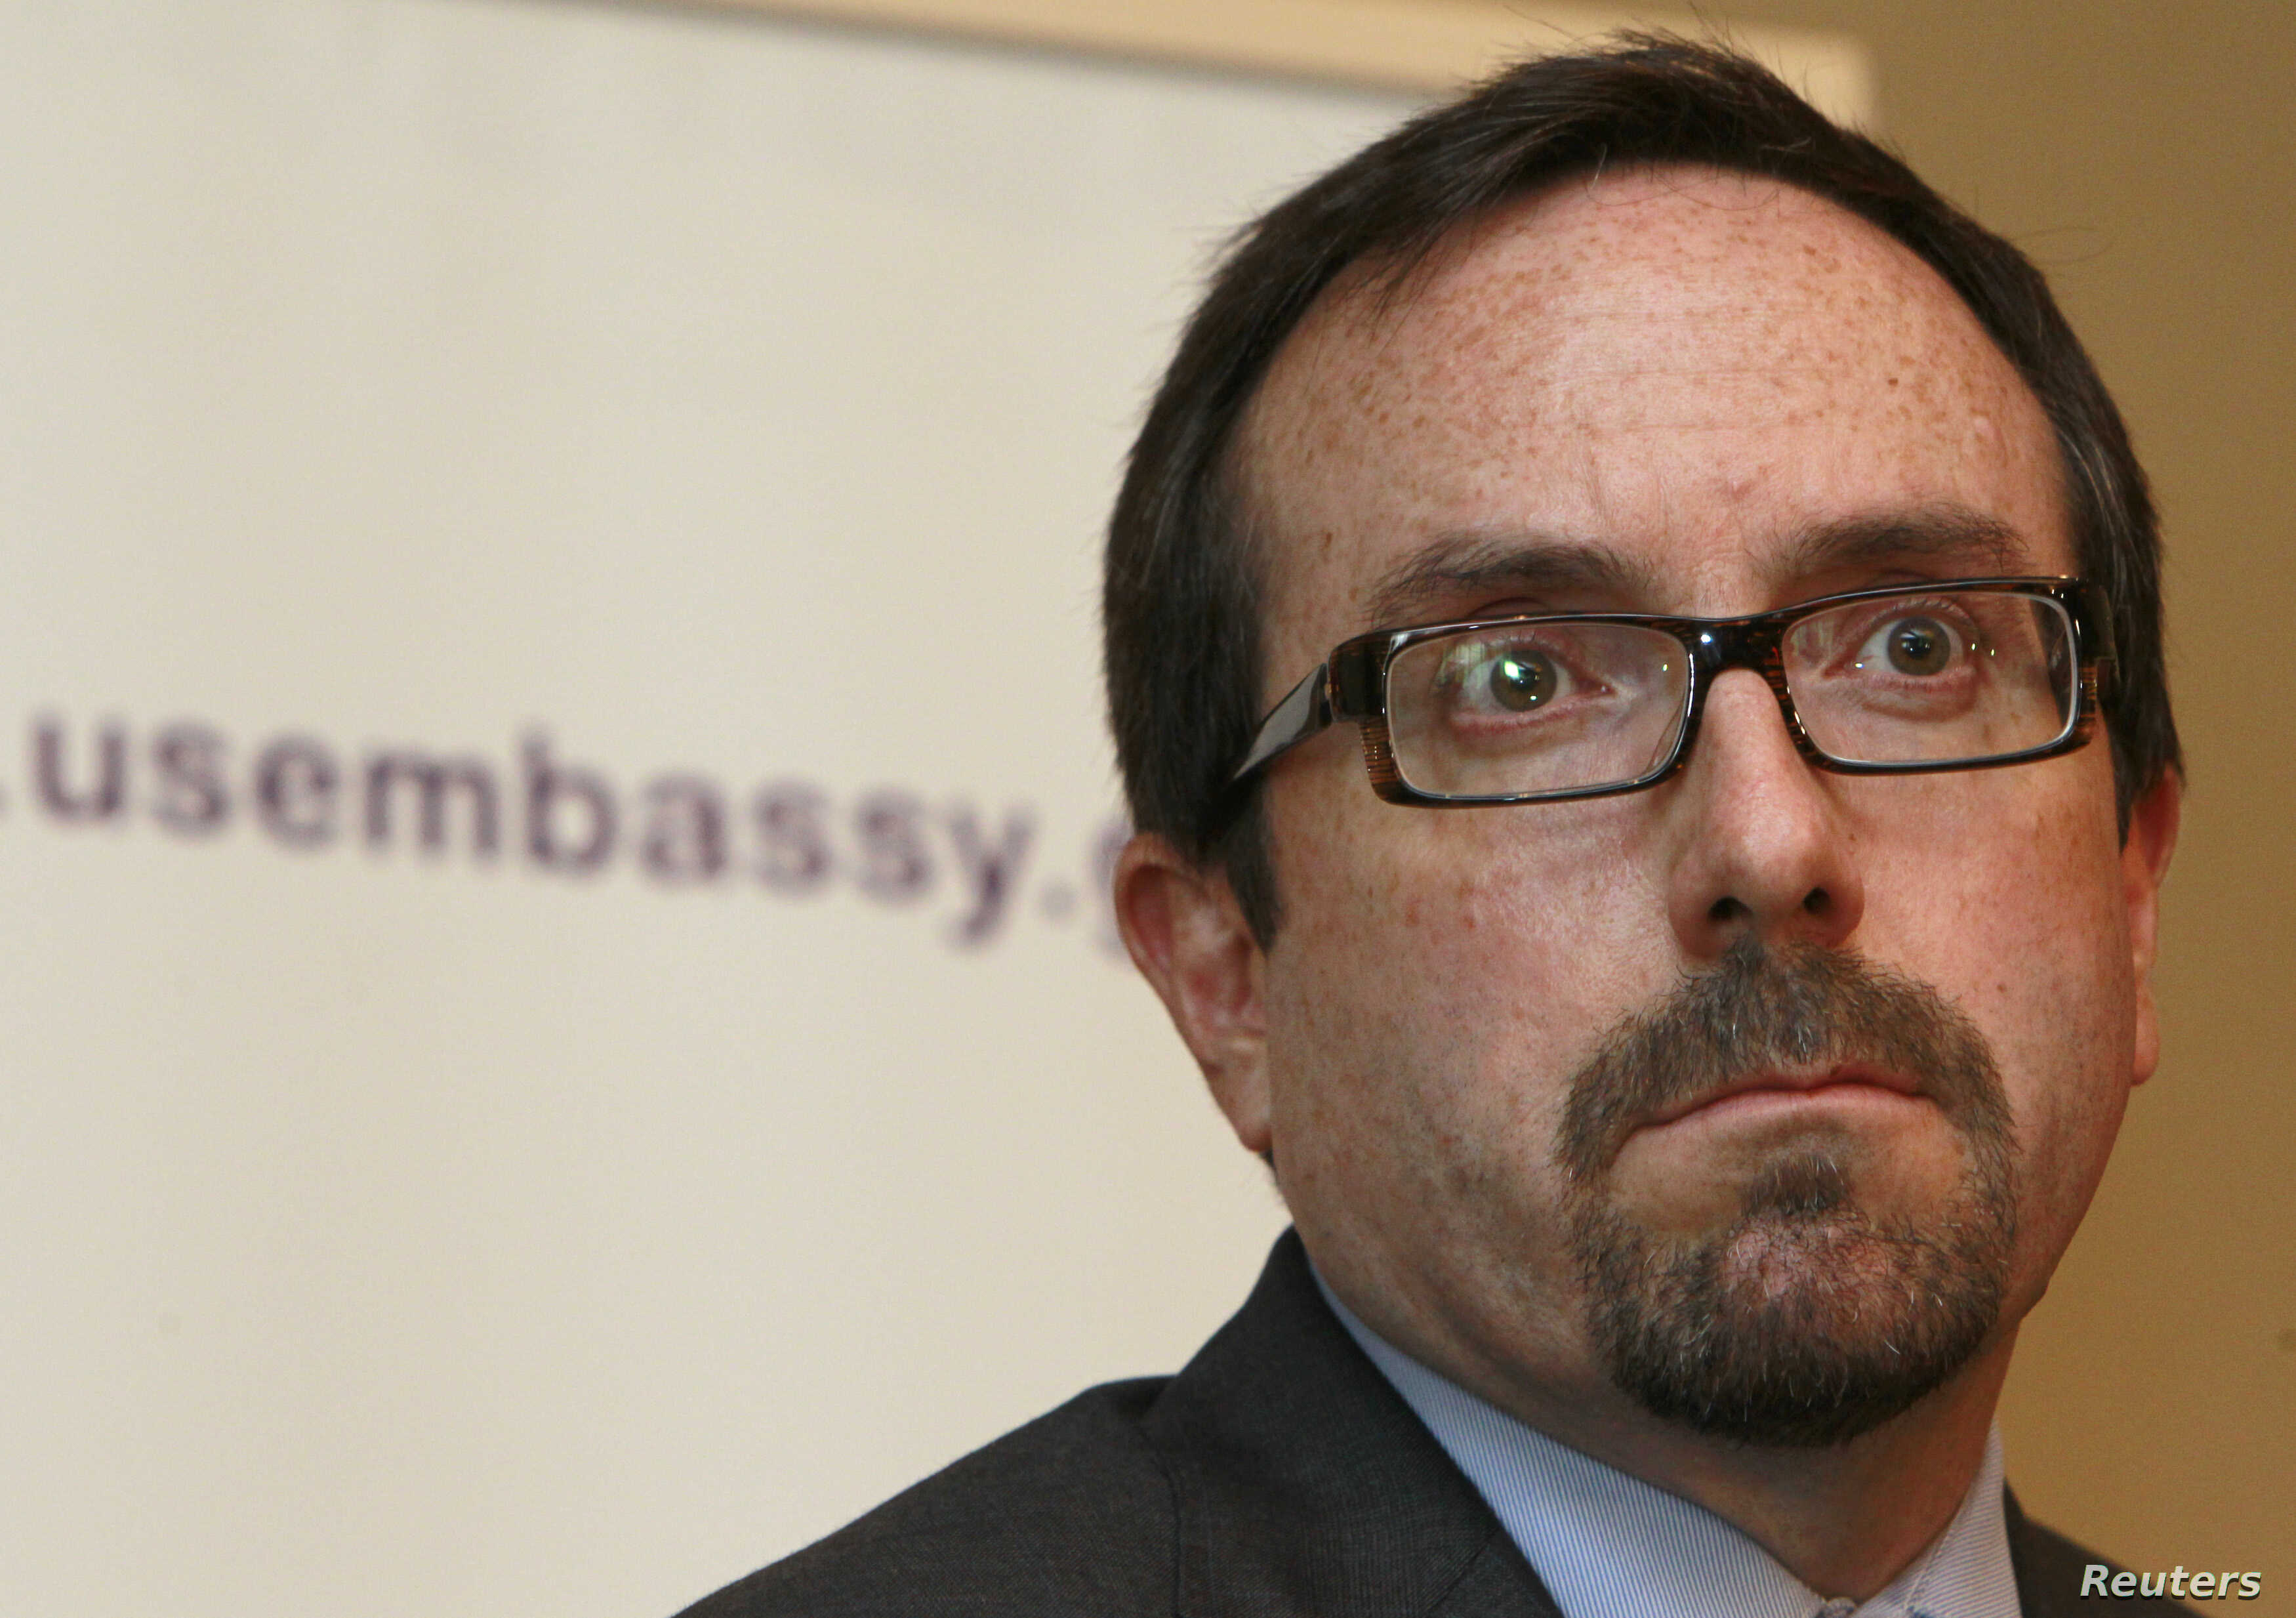 John Bass, shown while serving as U.S. ambassador to Georgia on June 28, 2012, attends a news conference in Tbilisi. Bass - the current ambassador to Turkey - is upset by Ankara's arrest of  U.S. employee Metin Topuz.